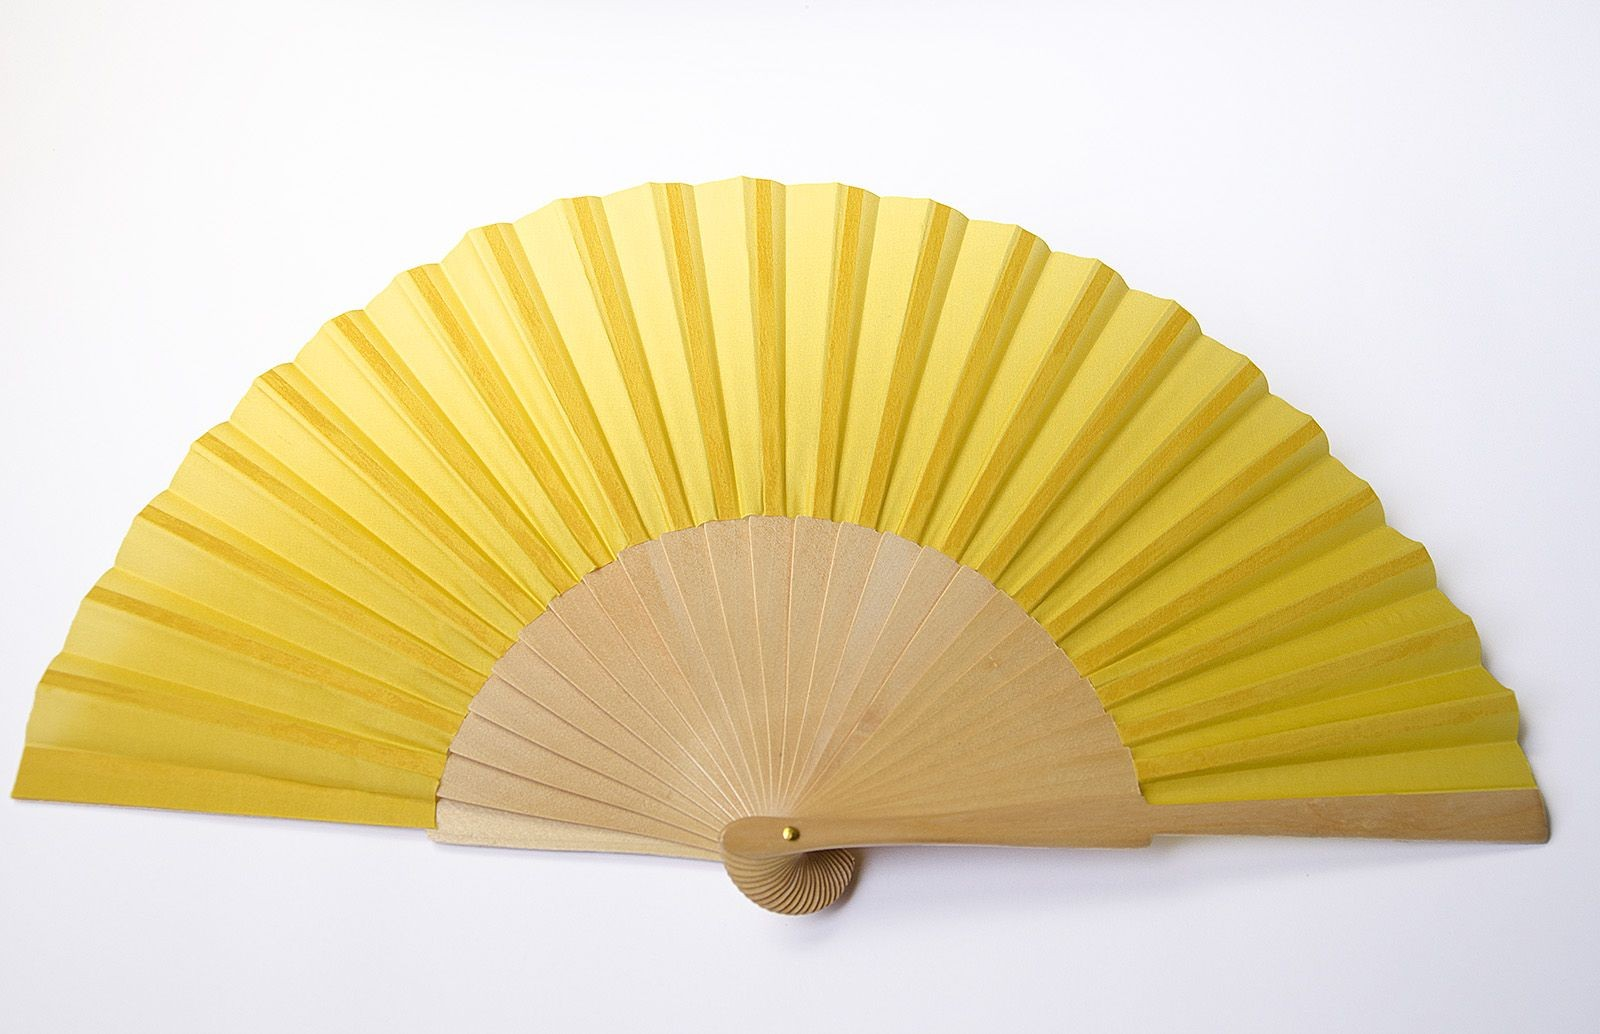 Yellow silk fan made with habotai 8 (in France also called pongé 9)and sycamore wood, ready to paint. 22 cm tall and 42 cm wide. Assembled in Spain